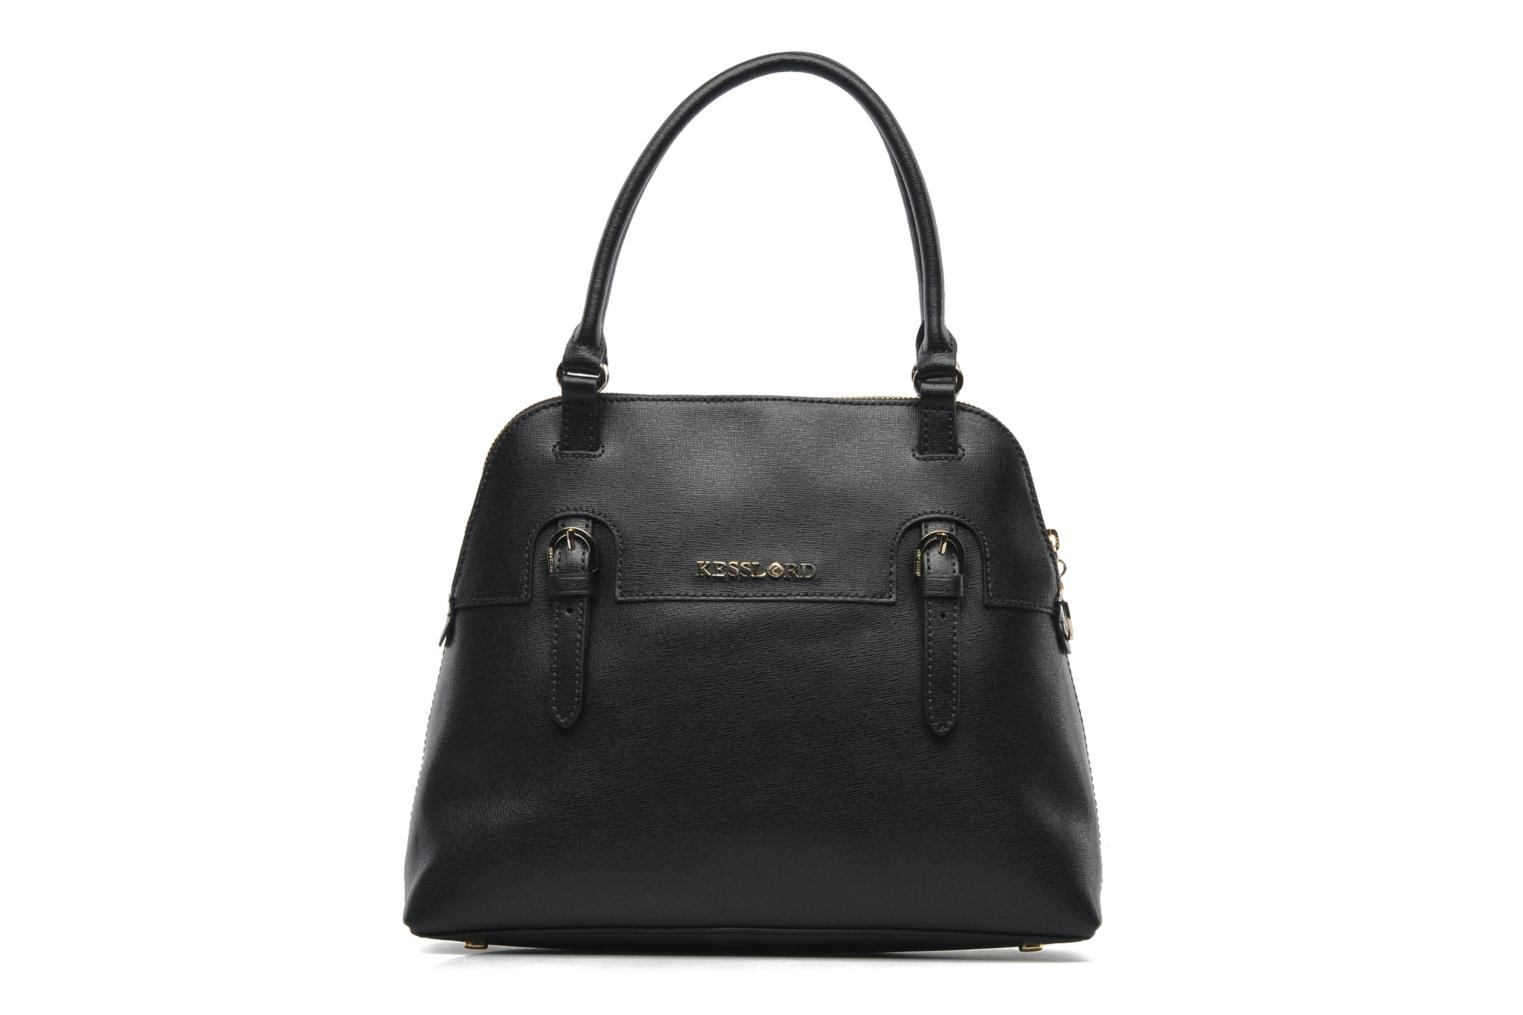 Handbags Kesslord Saffiano Sicilia Black Detailed View Pair